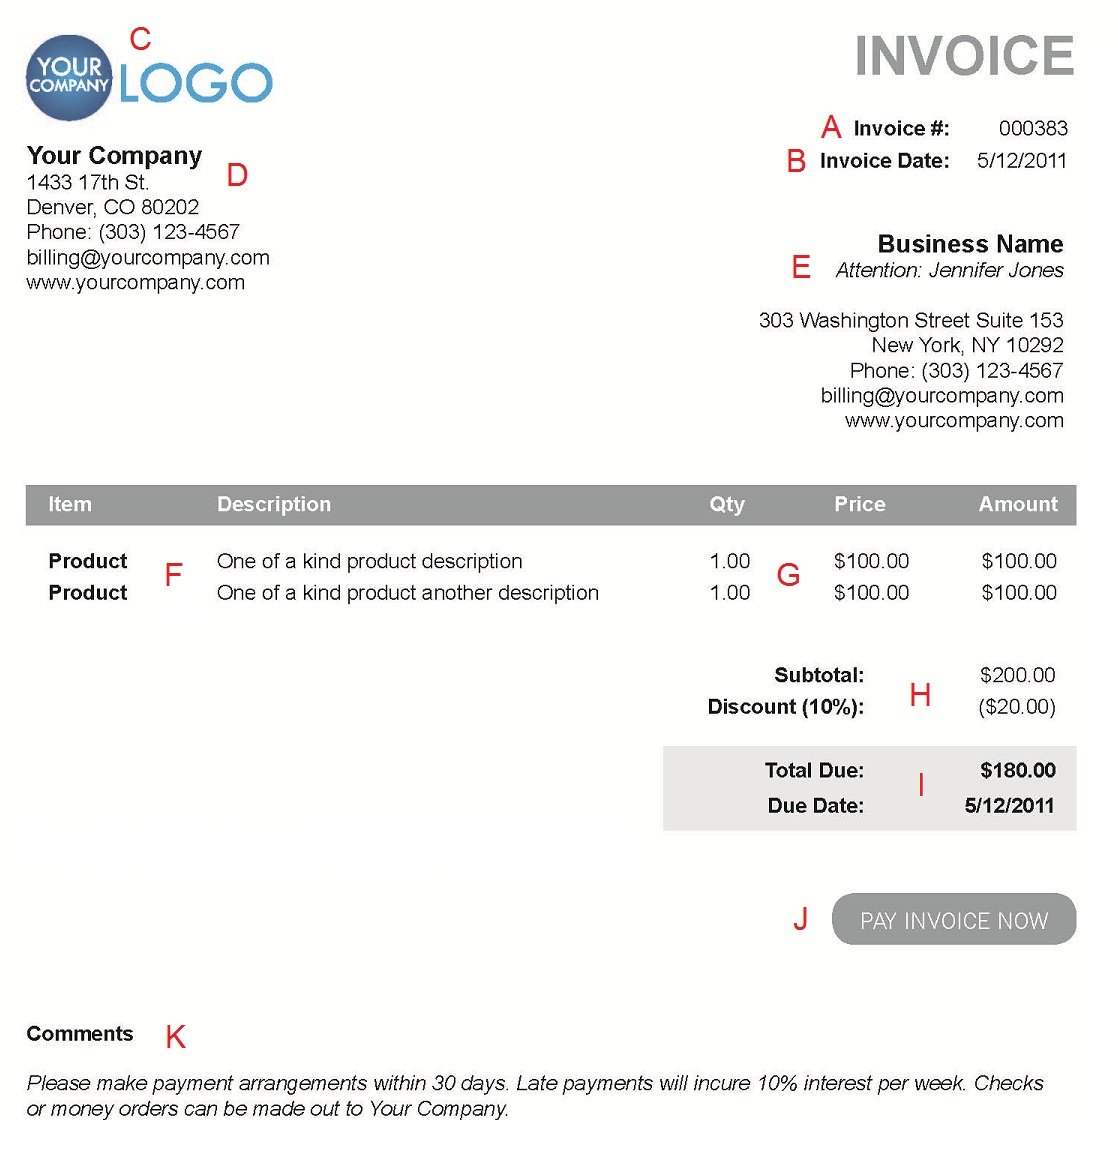 Sexygirlswallpapersus  Marvellous The  Different Sections Of An Electronic Payment Invoice With Inspiring A  With Cute Consultant Invoice Template Free Also Payment Of Invoices Within  Days In Addition Invoice To You And Dealer Invoice Price Canada Free As Well As Net Terms On Invoice Additionally What Is A Invoice Used For From Paysimplecom With Sexygirlswallpapersus  Inspiring The  Different Sections Of An Electronic Payment Invoice With Cute A  And Marvellous Consultant Invoice Template Free Also Payment Of Invoices Within  Days In Addition Invoice To You From Paysimplecom